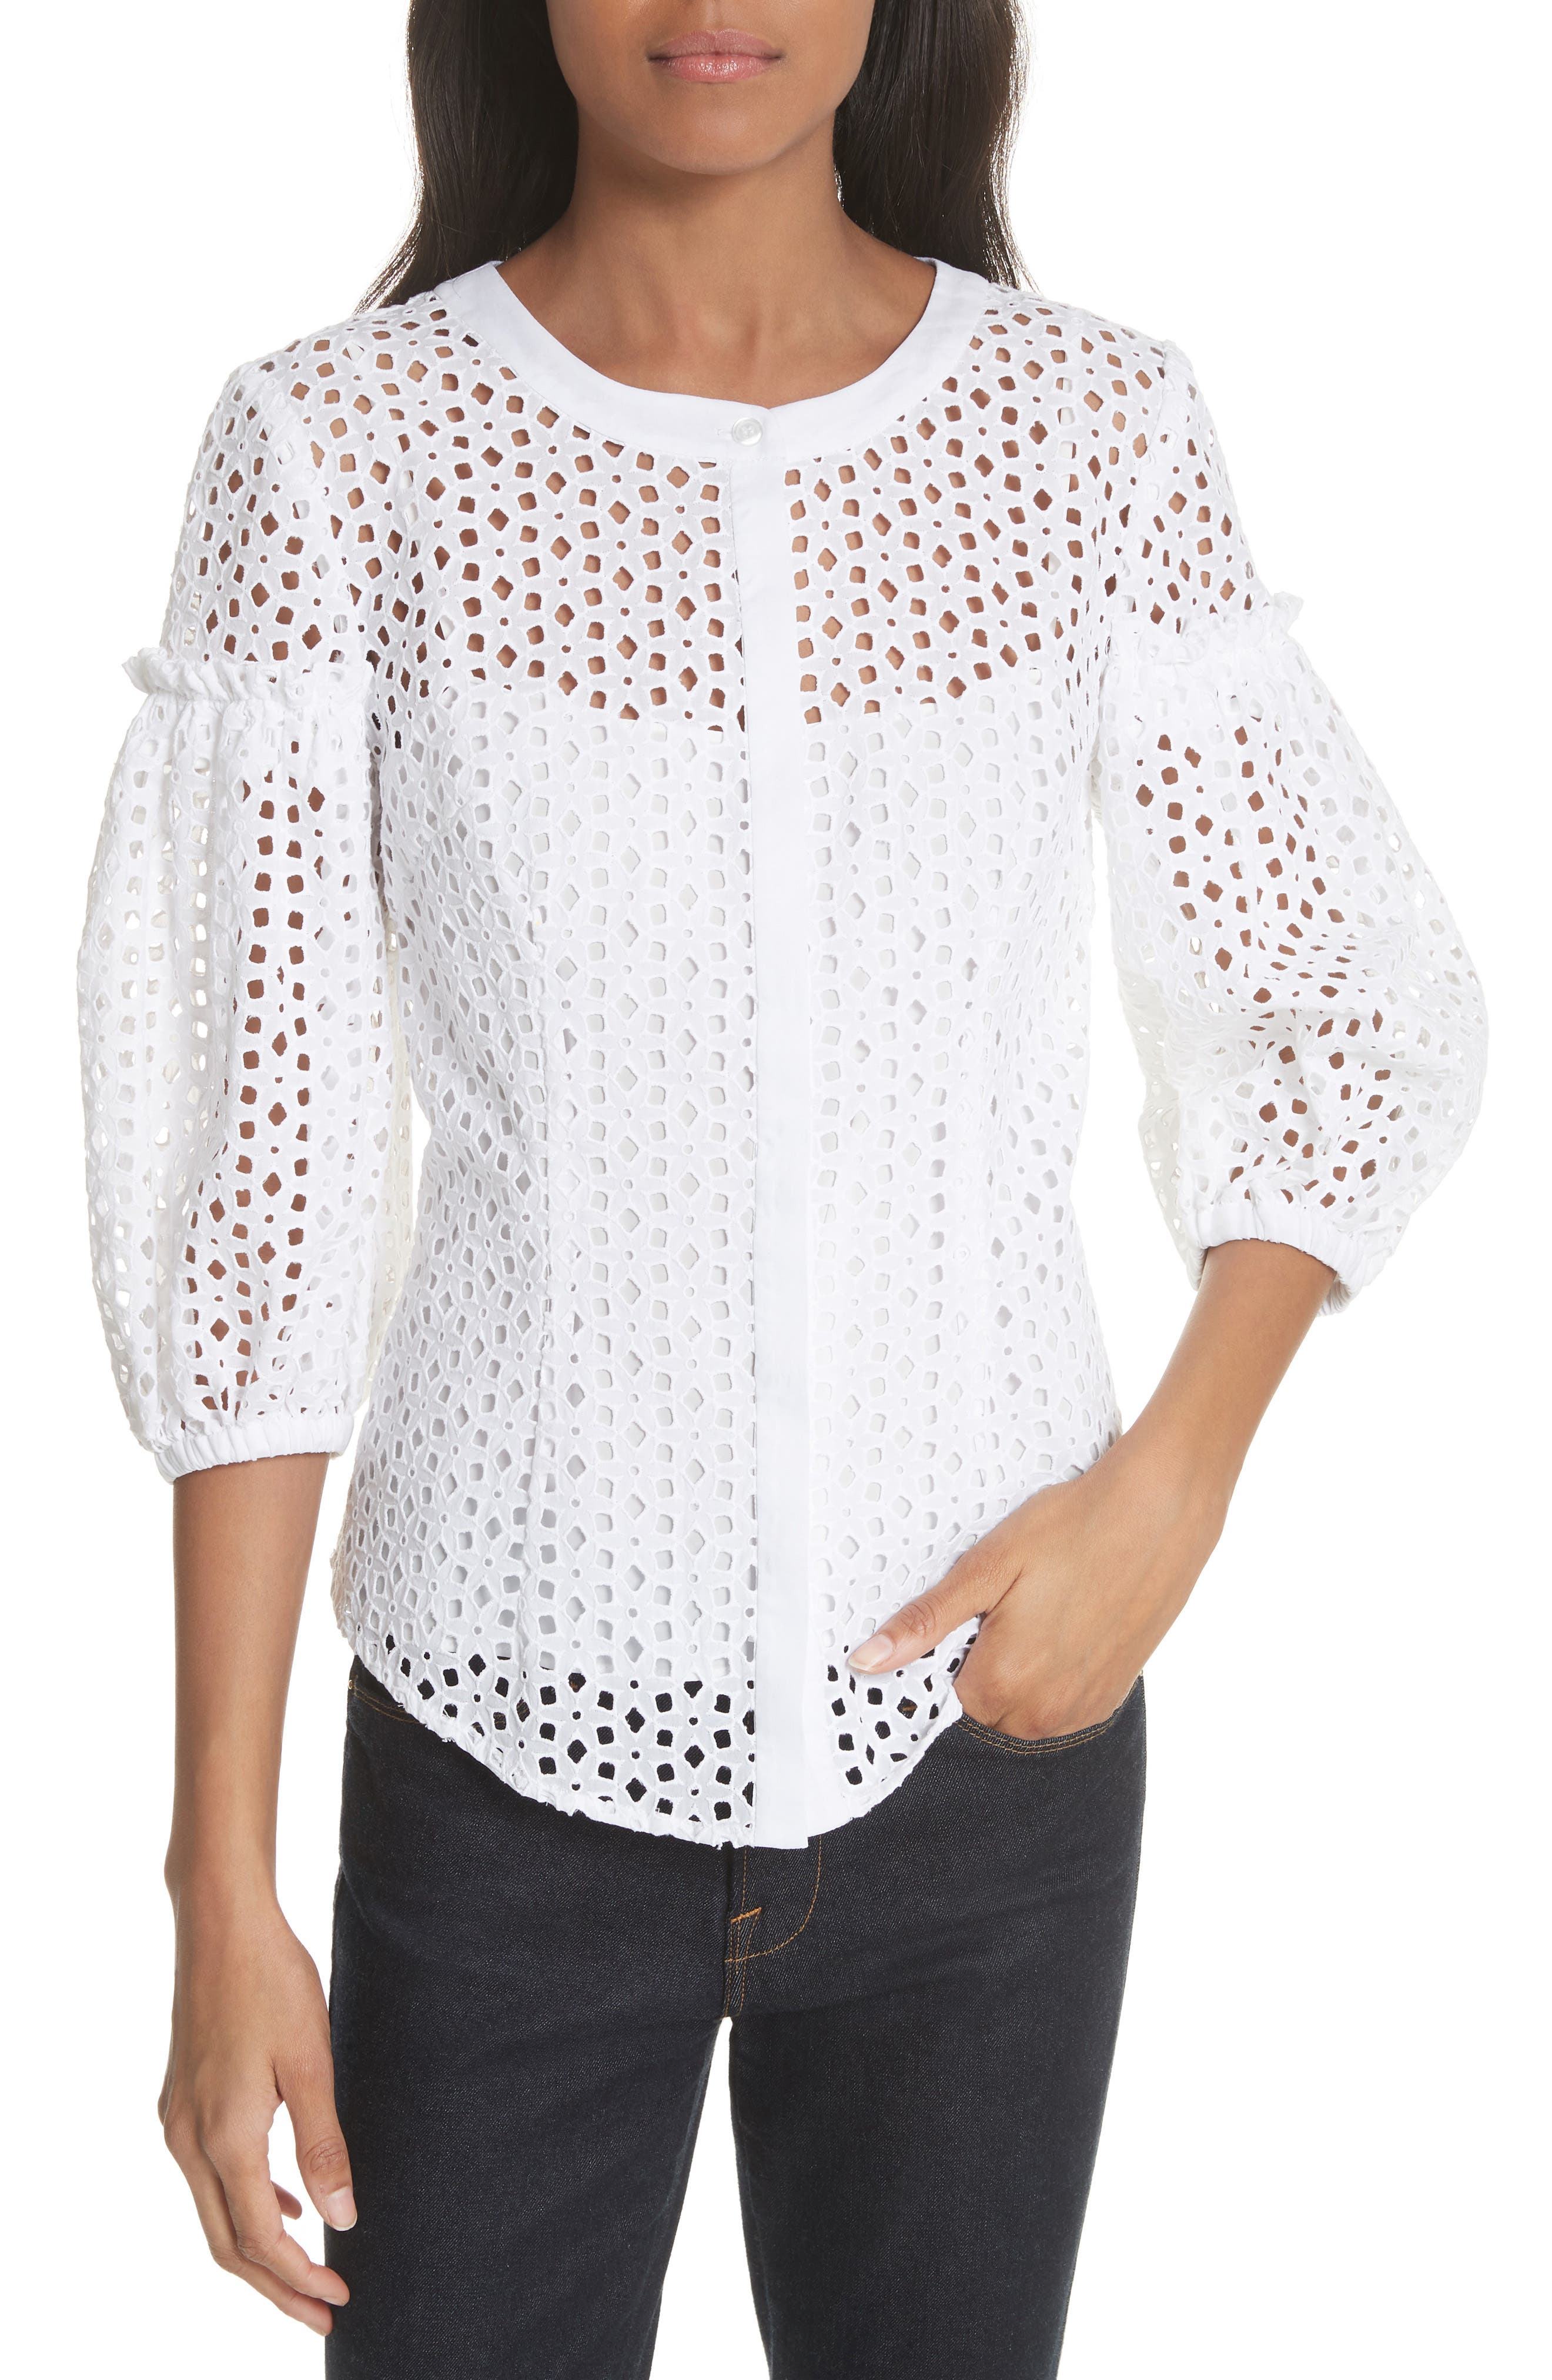 Milly Michelle Floral Cotton Eyelet Blouse